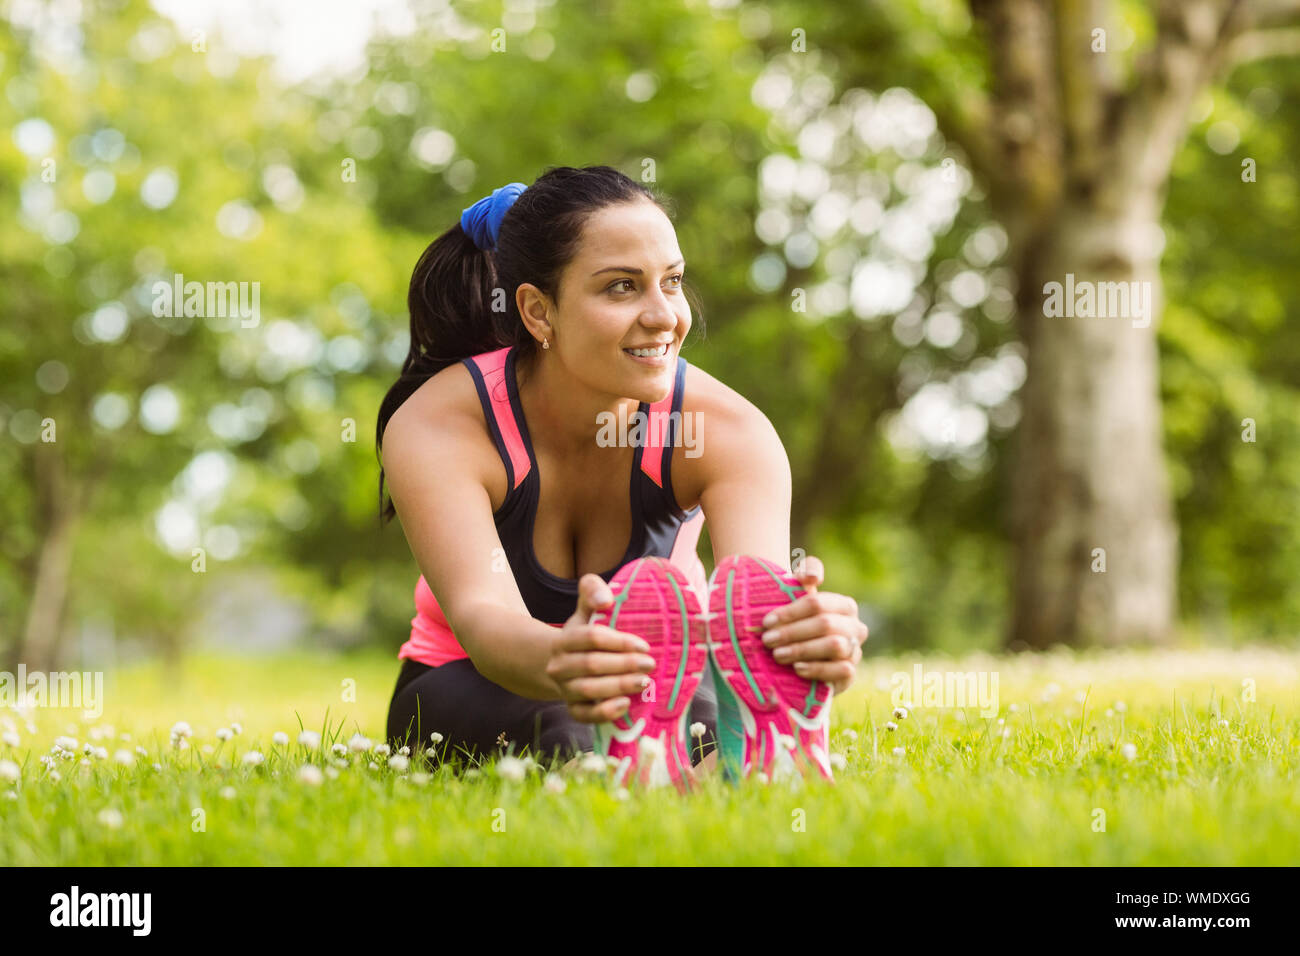 Fit brown hair stretching on the grass in the park Stock Photo